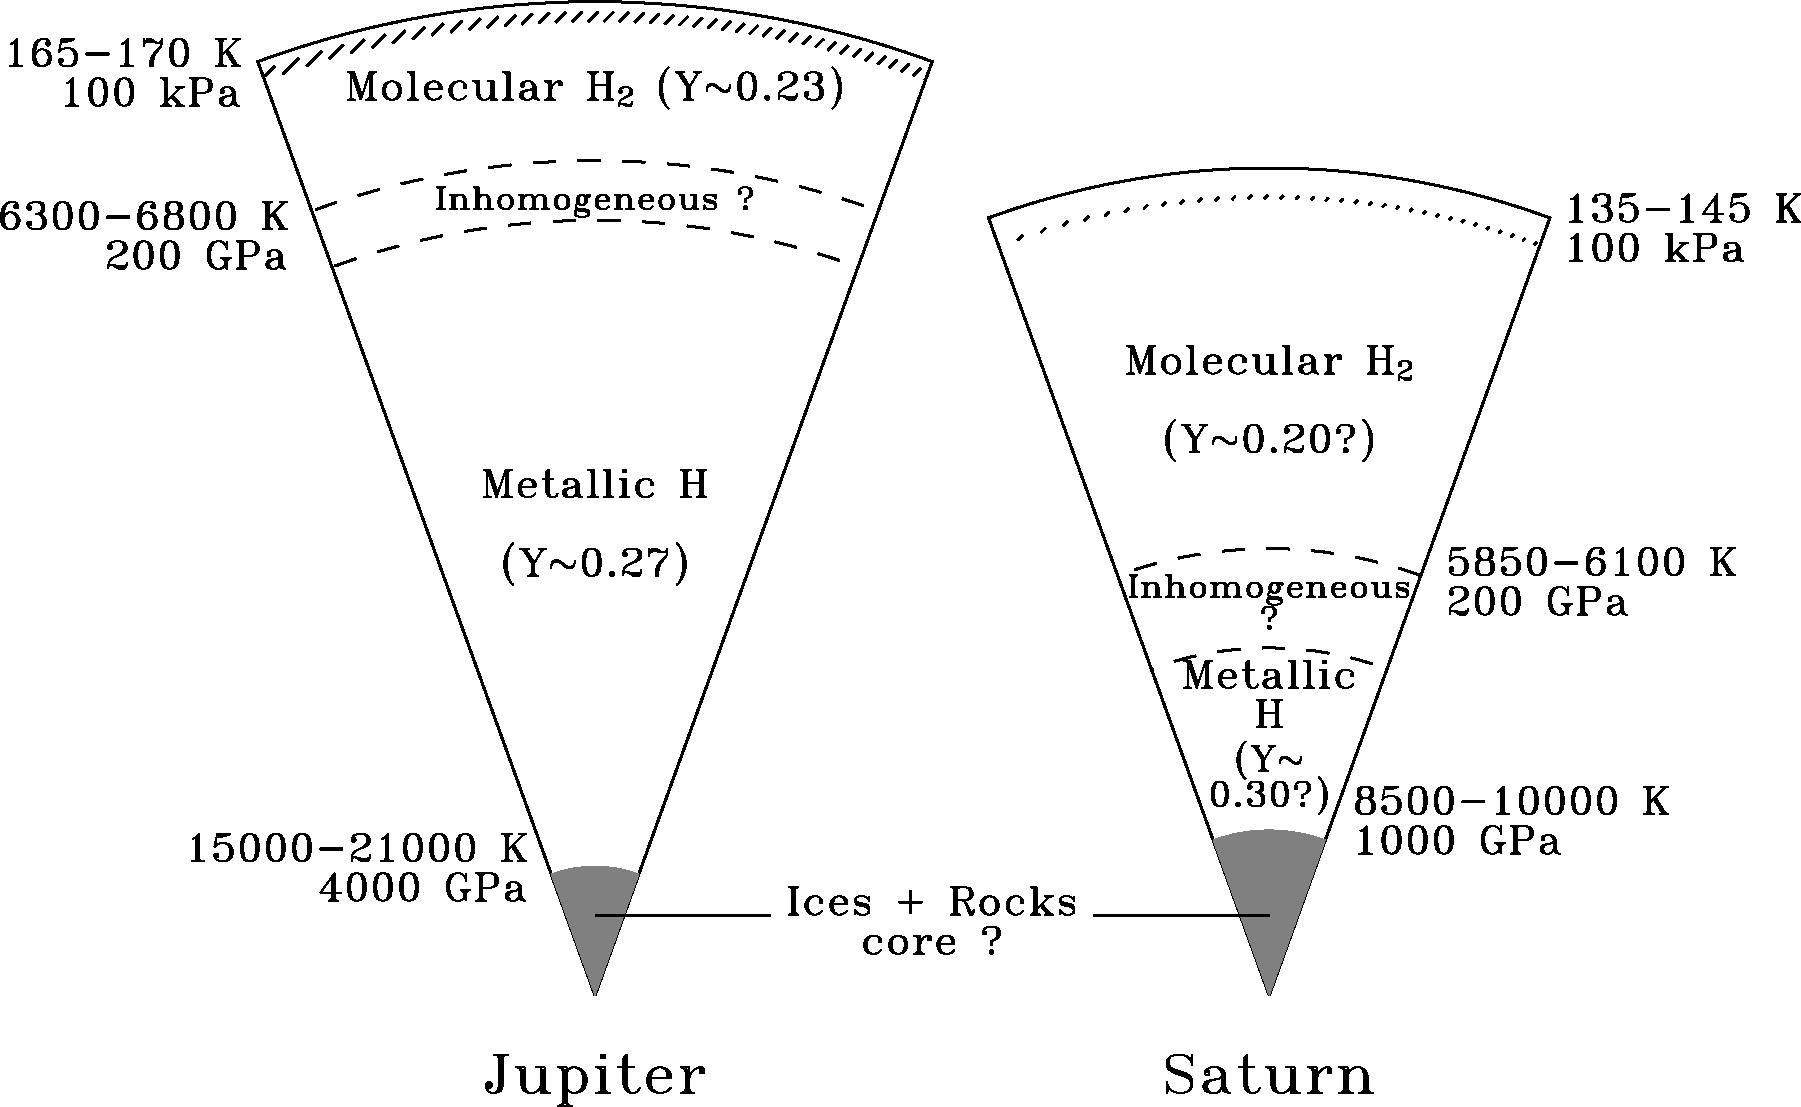 Schematic representation of the interiors of Jupiter and Saturn